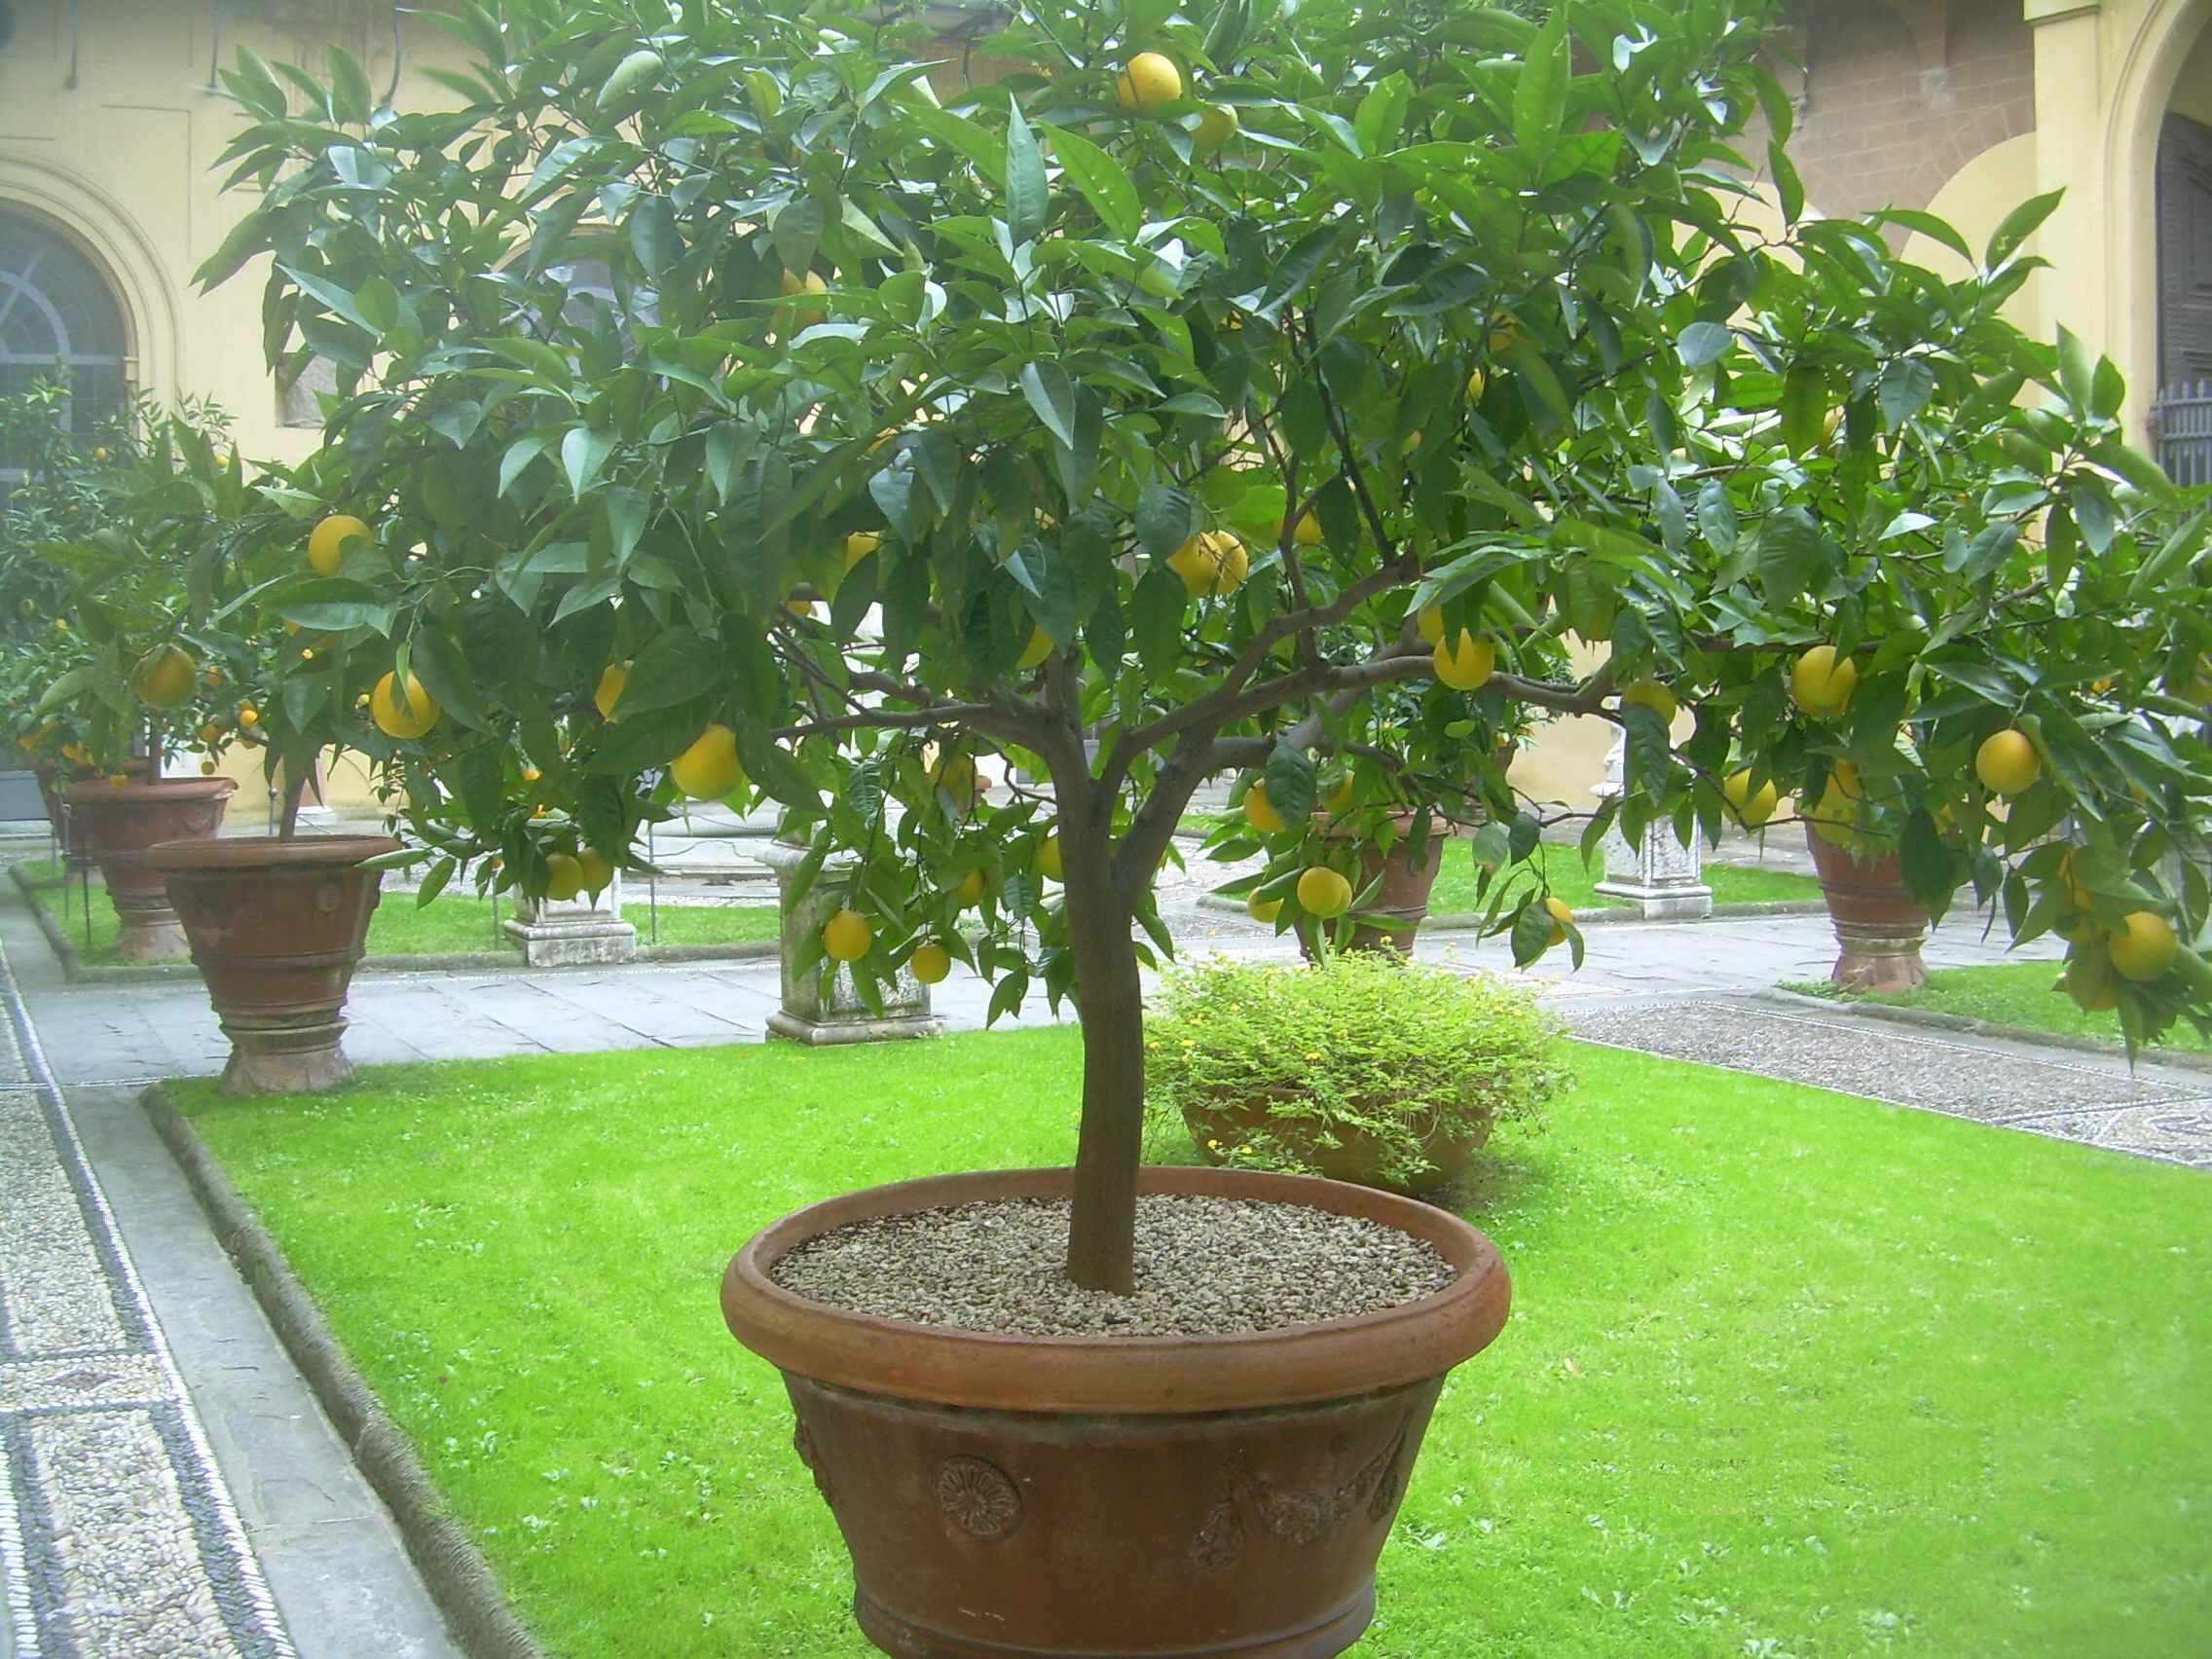 Amazing Lemon Trees In Pots | ... Are A Number Of These Potted Citrus Trees In The  Medici Palace Garden